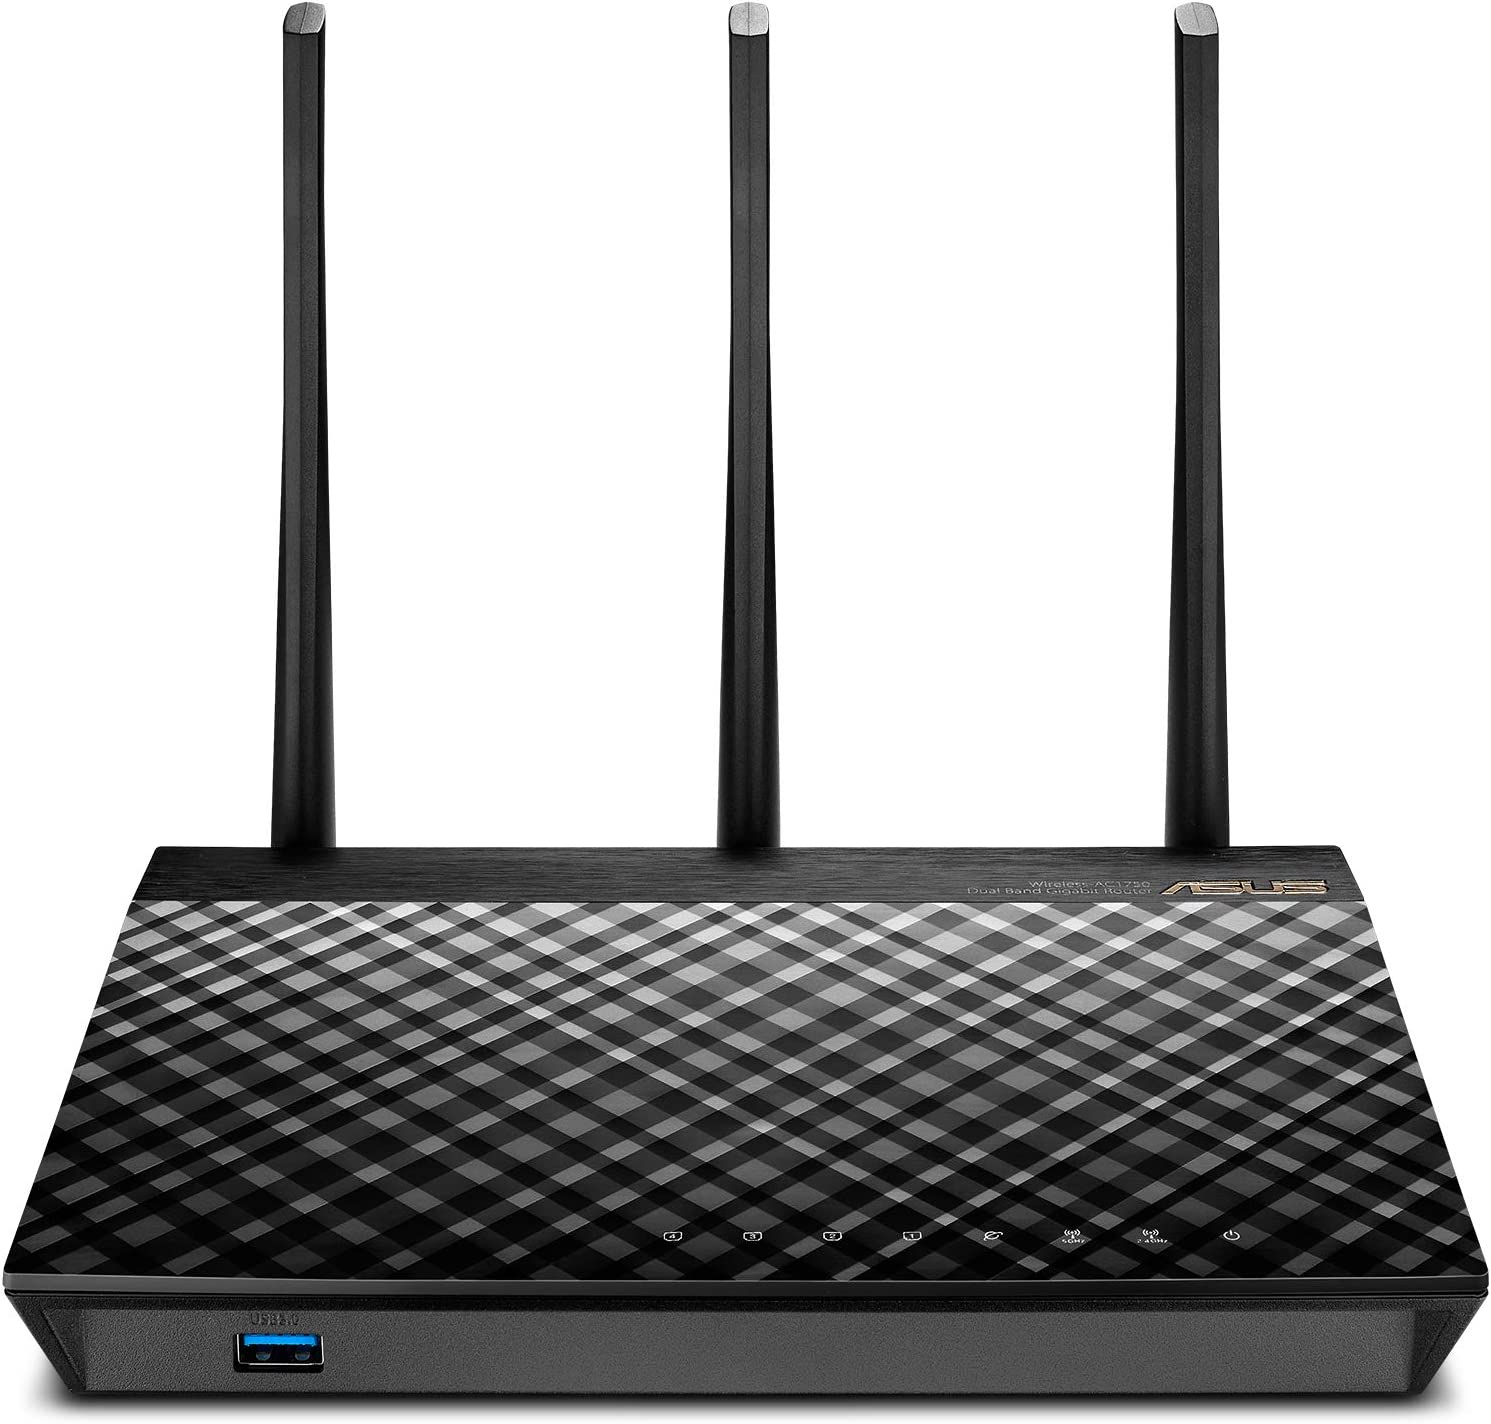 Asus Dual Band 3x3 Ac1750 Wifi 4 Port Gigabit Router With Speeds Up To 1750mbps Airadar To Strengthens Wireless Connections Via High Powered Amplification Beam Forming 2x Usb 2 0 Ports Rt Ac66u Computers